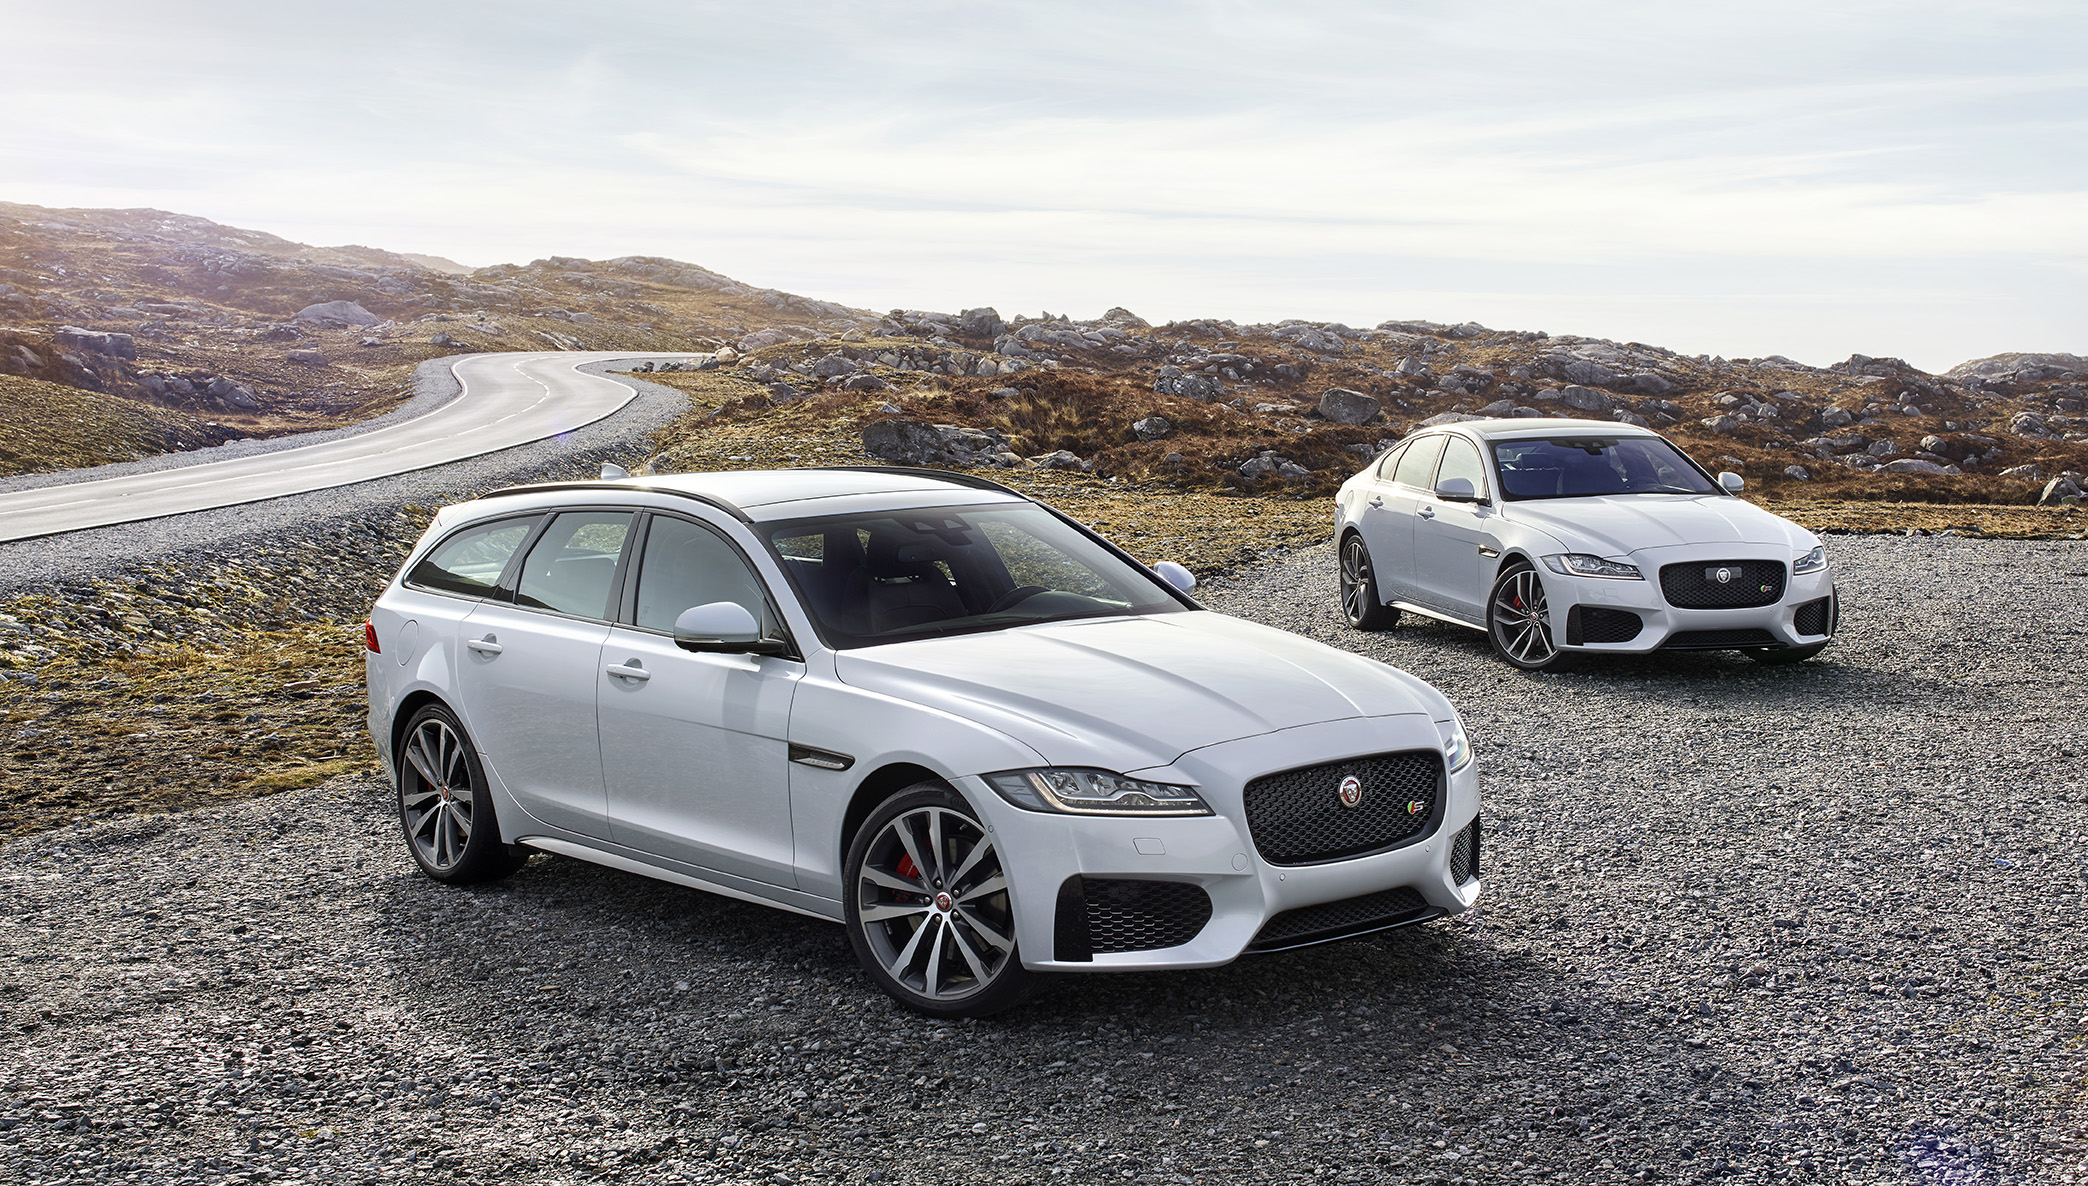 2018 jaguar xf sportbrake coming to the us with sc v6 71445 46 photos biocorpaavc Gallery